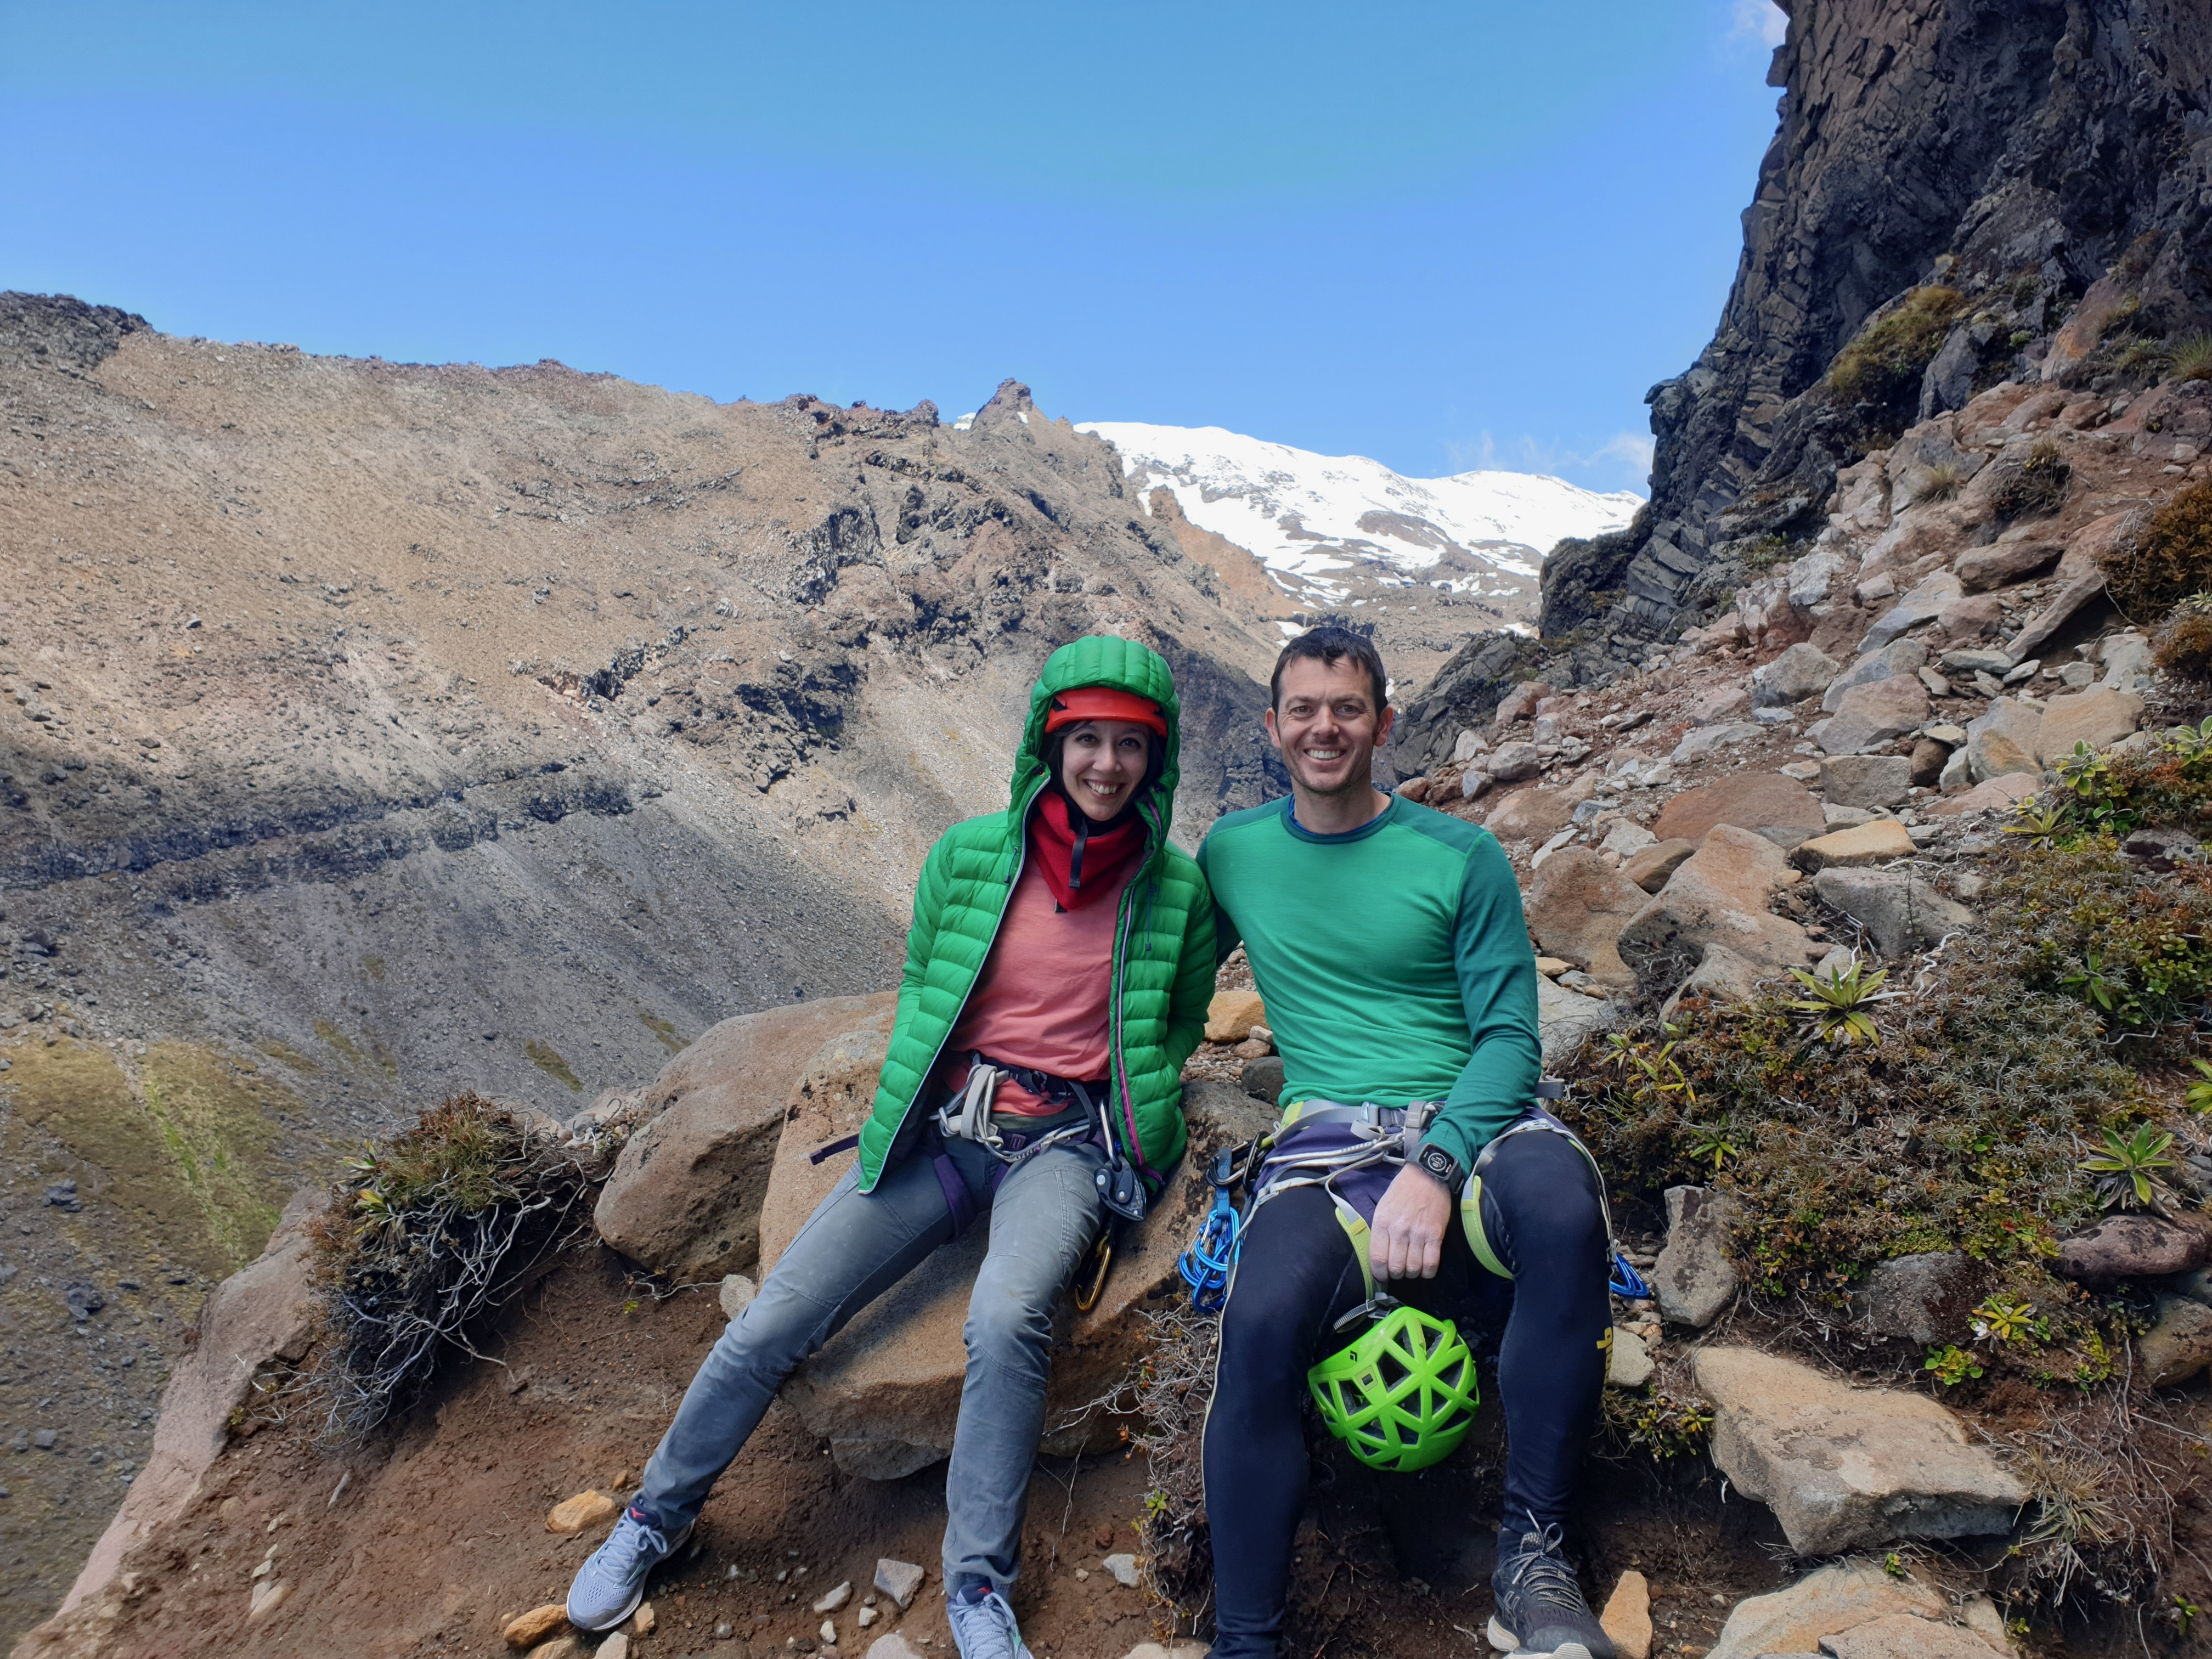 Our first visit to Whakapapa Gorge crag and we love it!